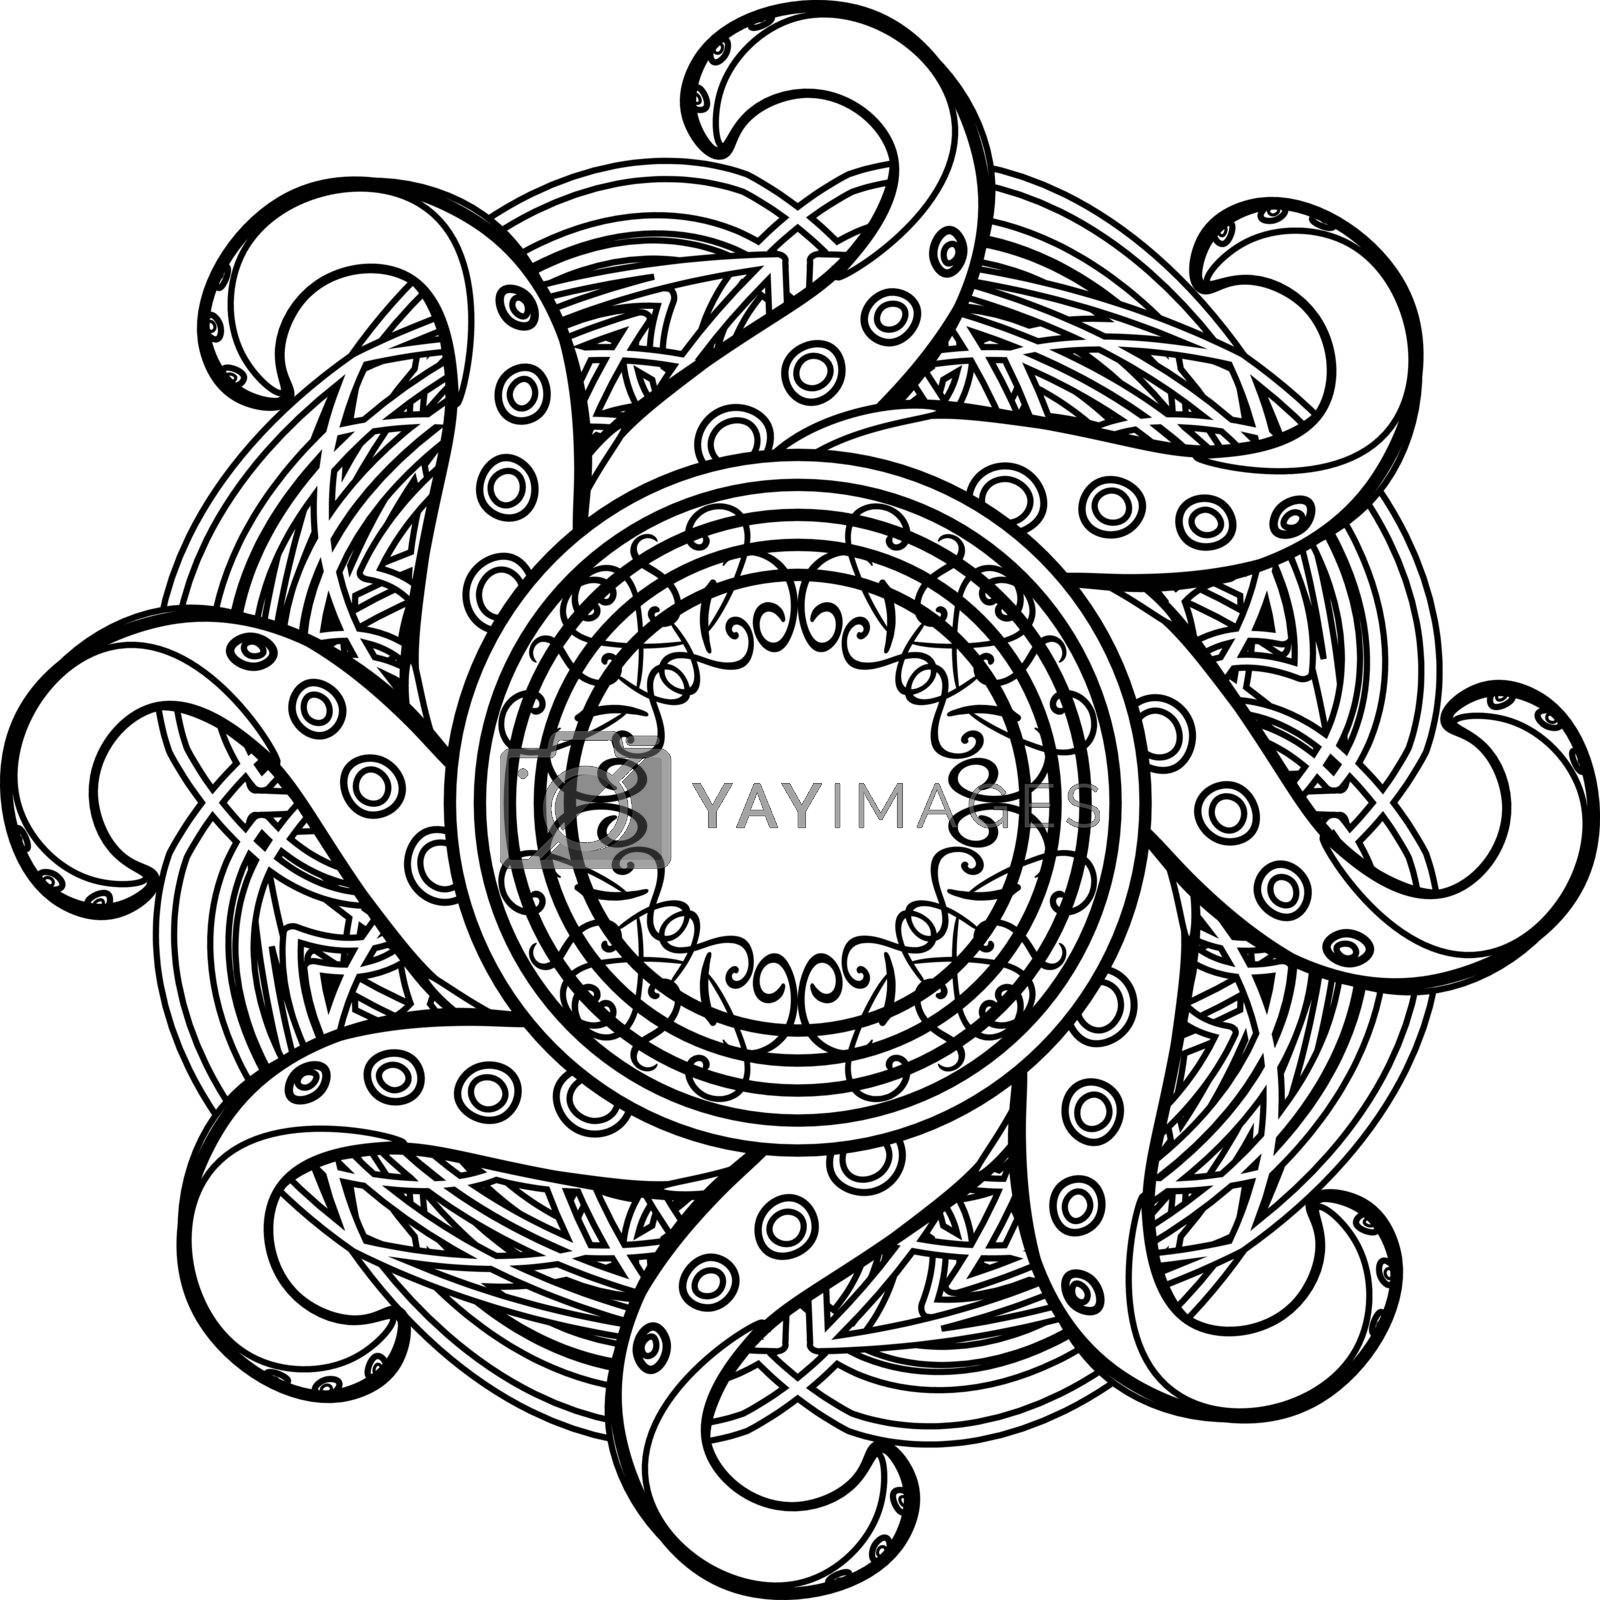 Abstract black and white gothic mandala with celtic tracery and octopus tentacles